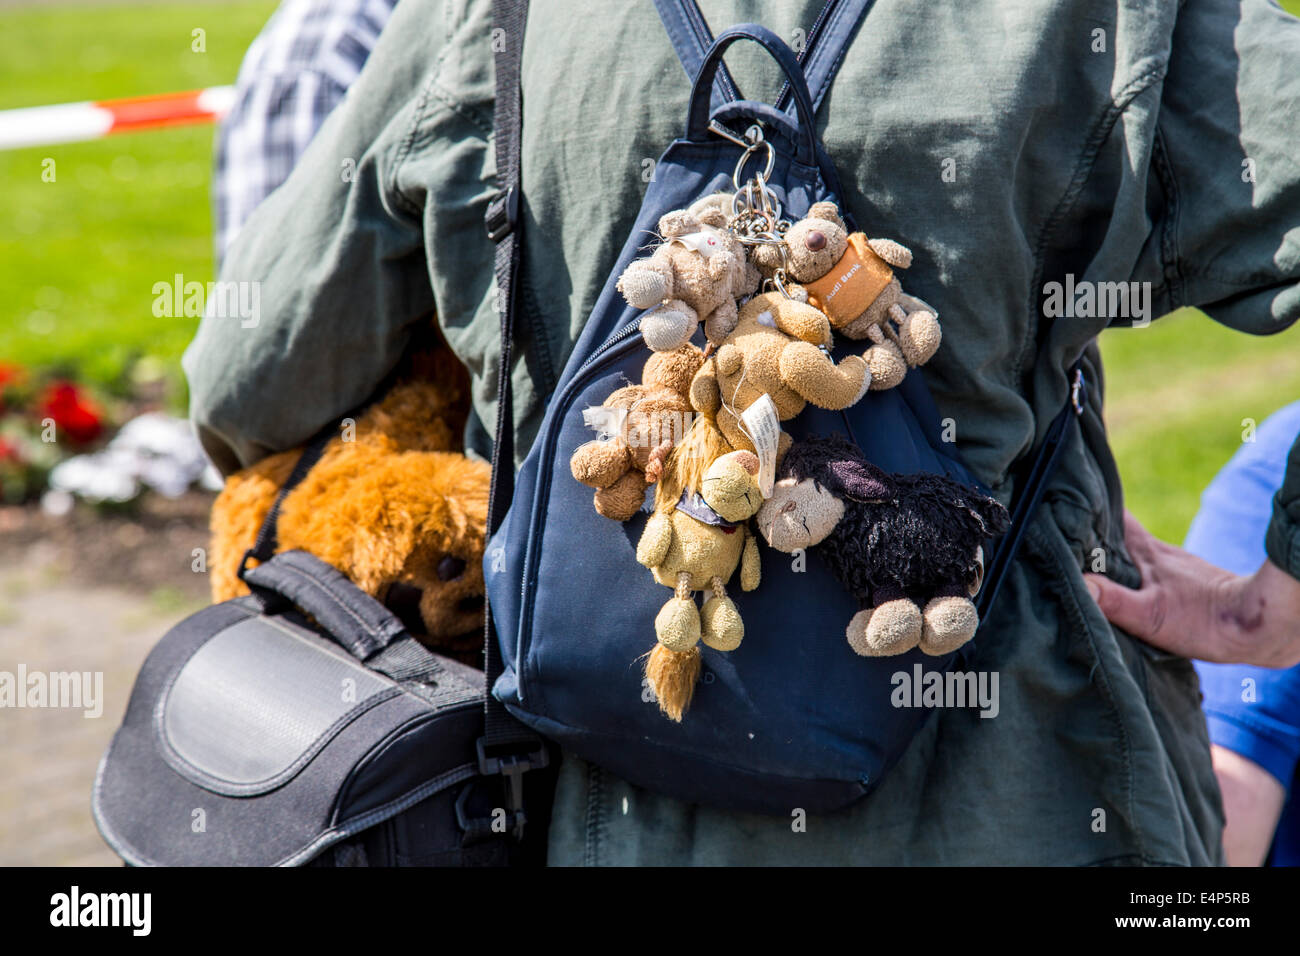 Woman with many soft toy keychain on a backpack - Stock Image